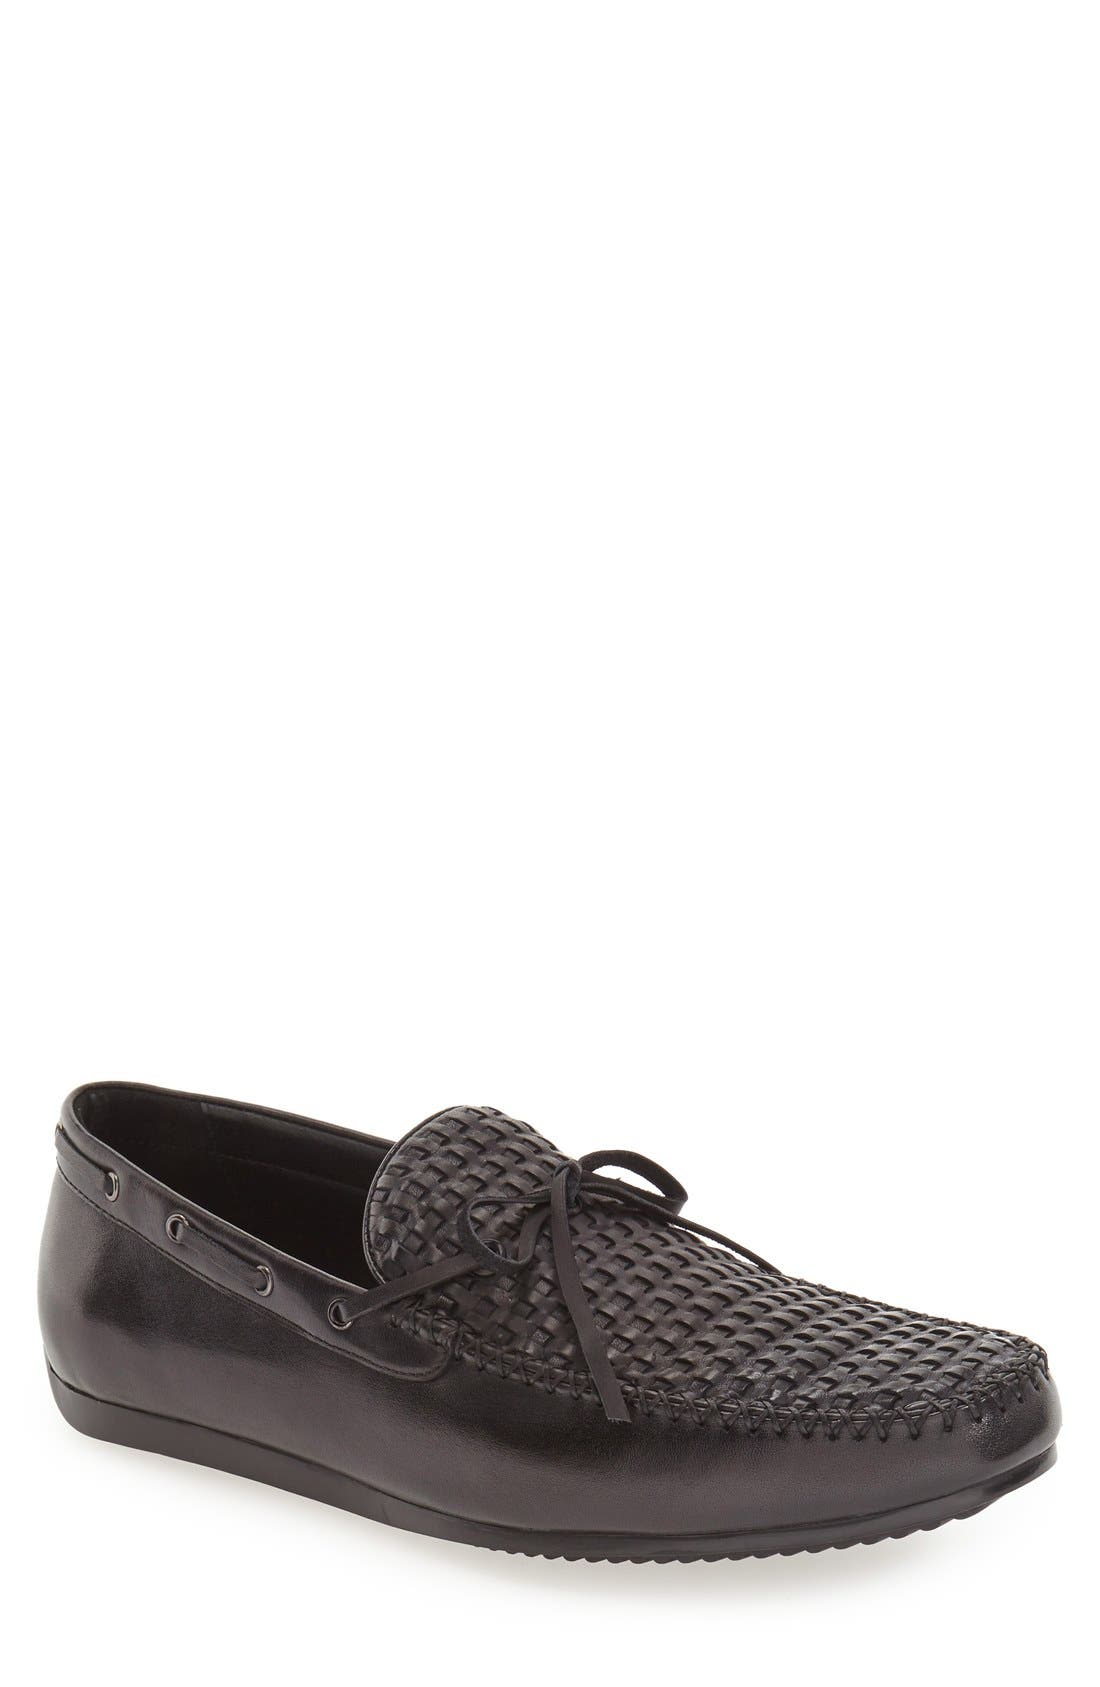 'Cezanne' Woven Tie Loafer,                             Alternate thumbnail 4, color,                             BLACK